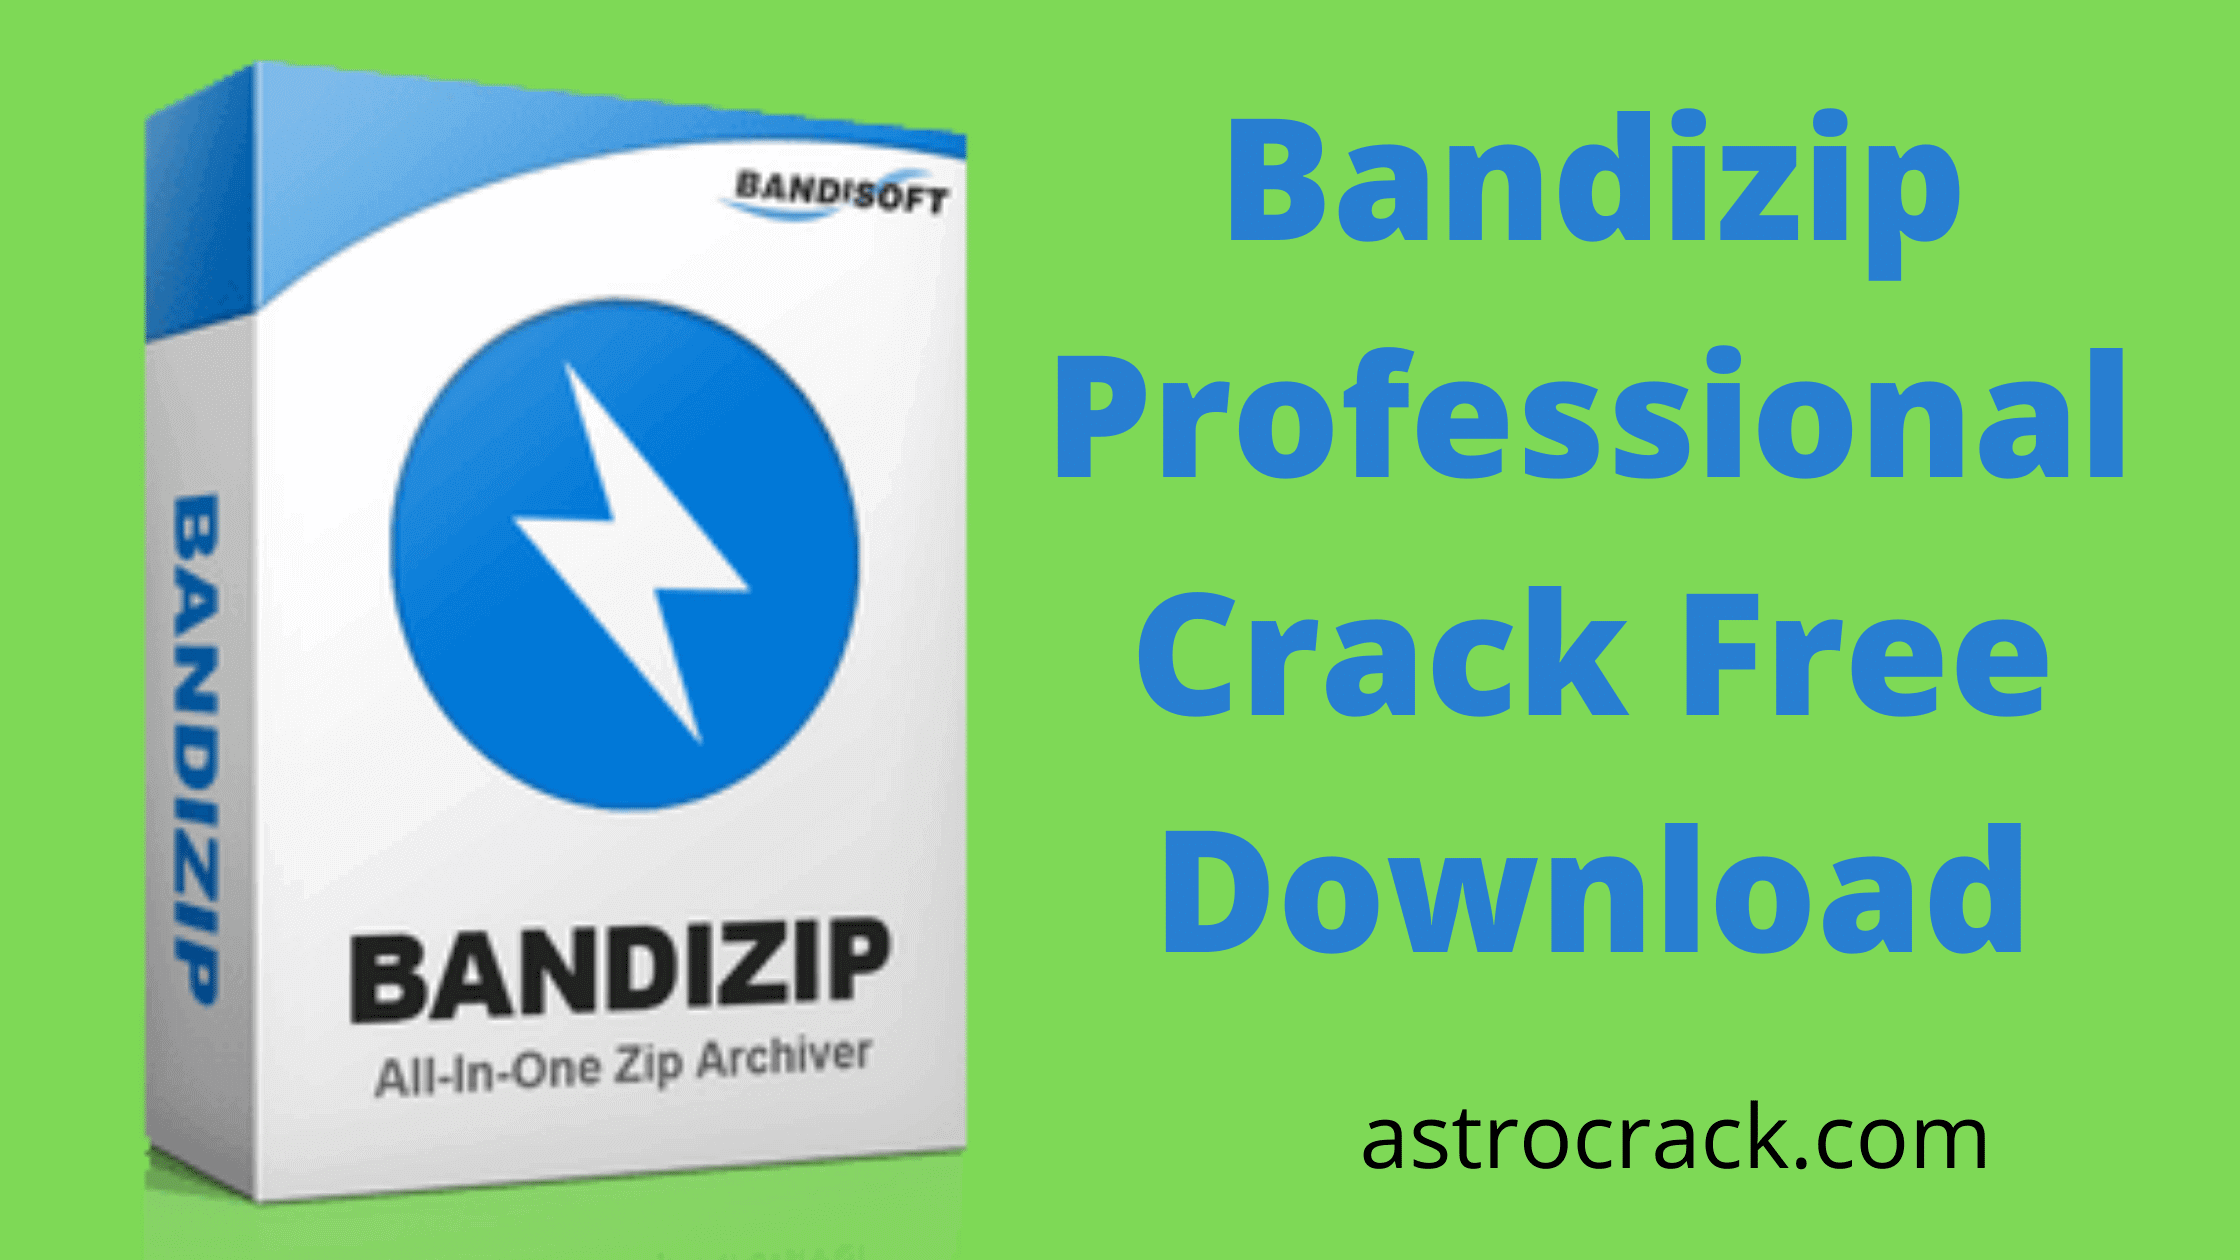 Bandizip Professional, Bandizip Professional crack, Bandizip Professional crack download, Bandizip Professional Crack patched, Bandizip Professional download